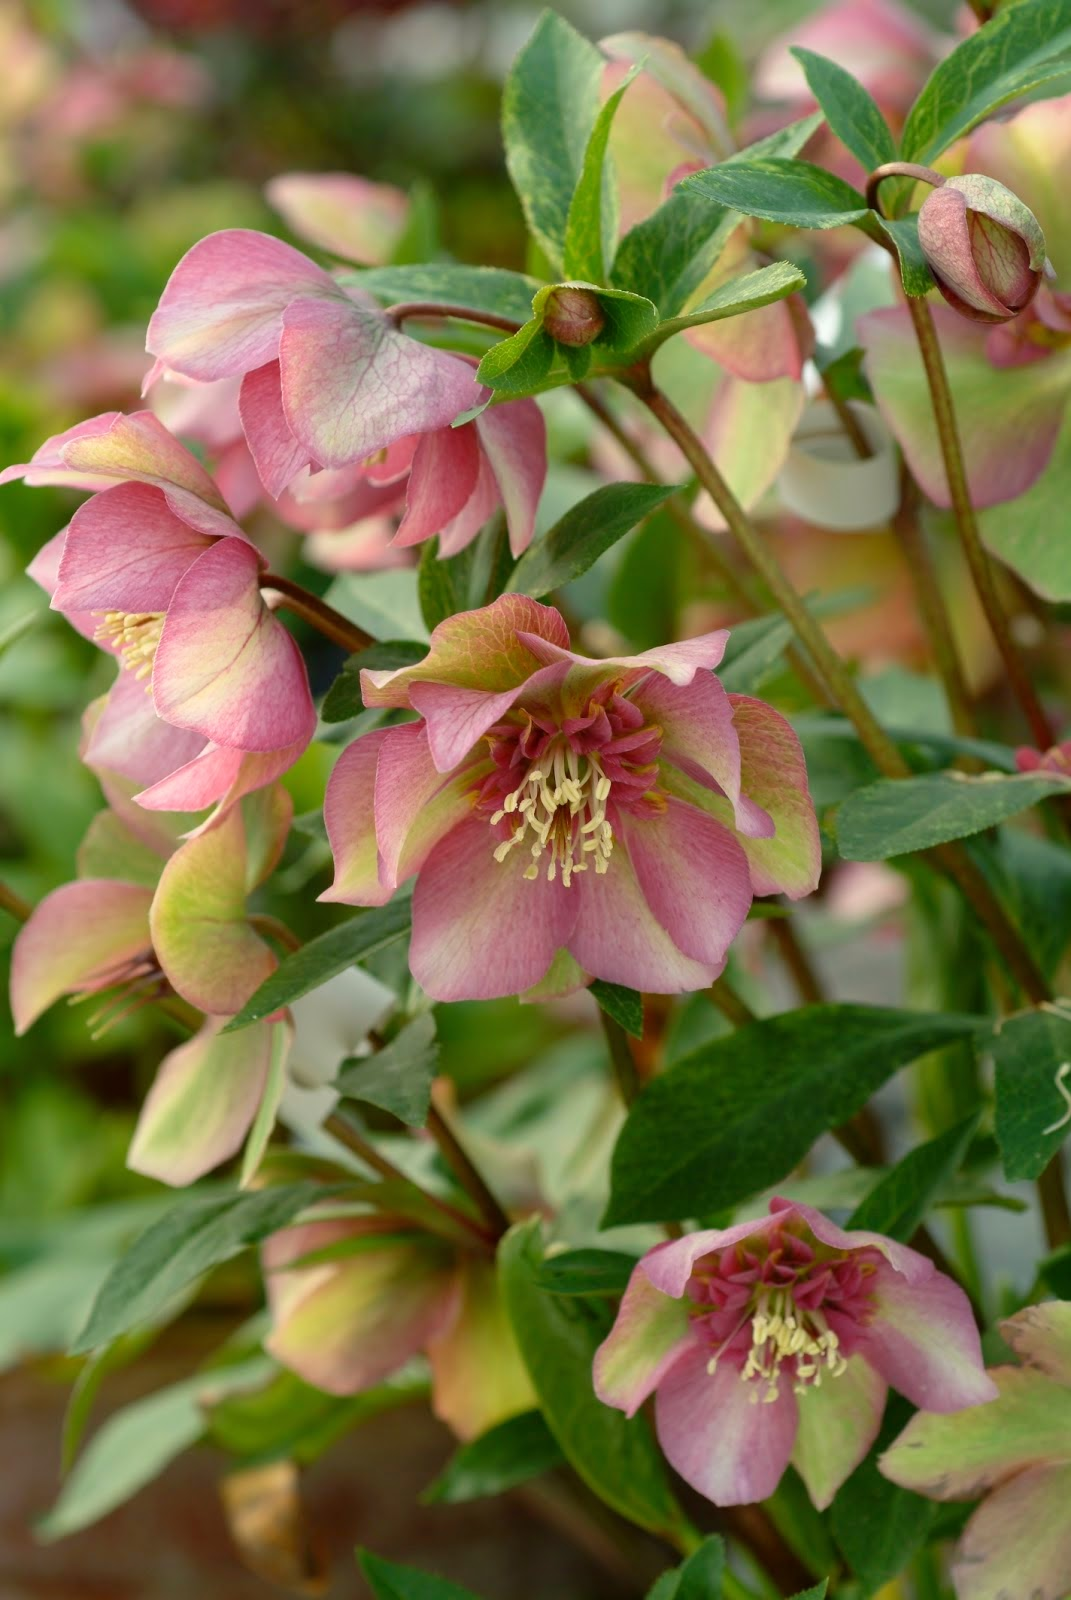 Hellebore A Great Plant For Shade That Deer Don T Eat